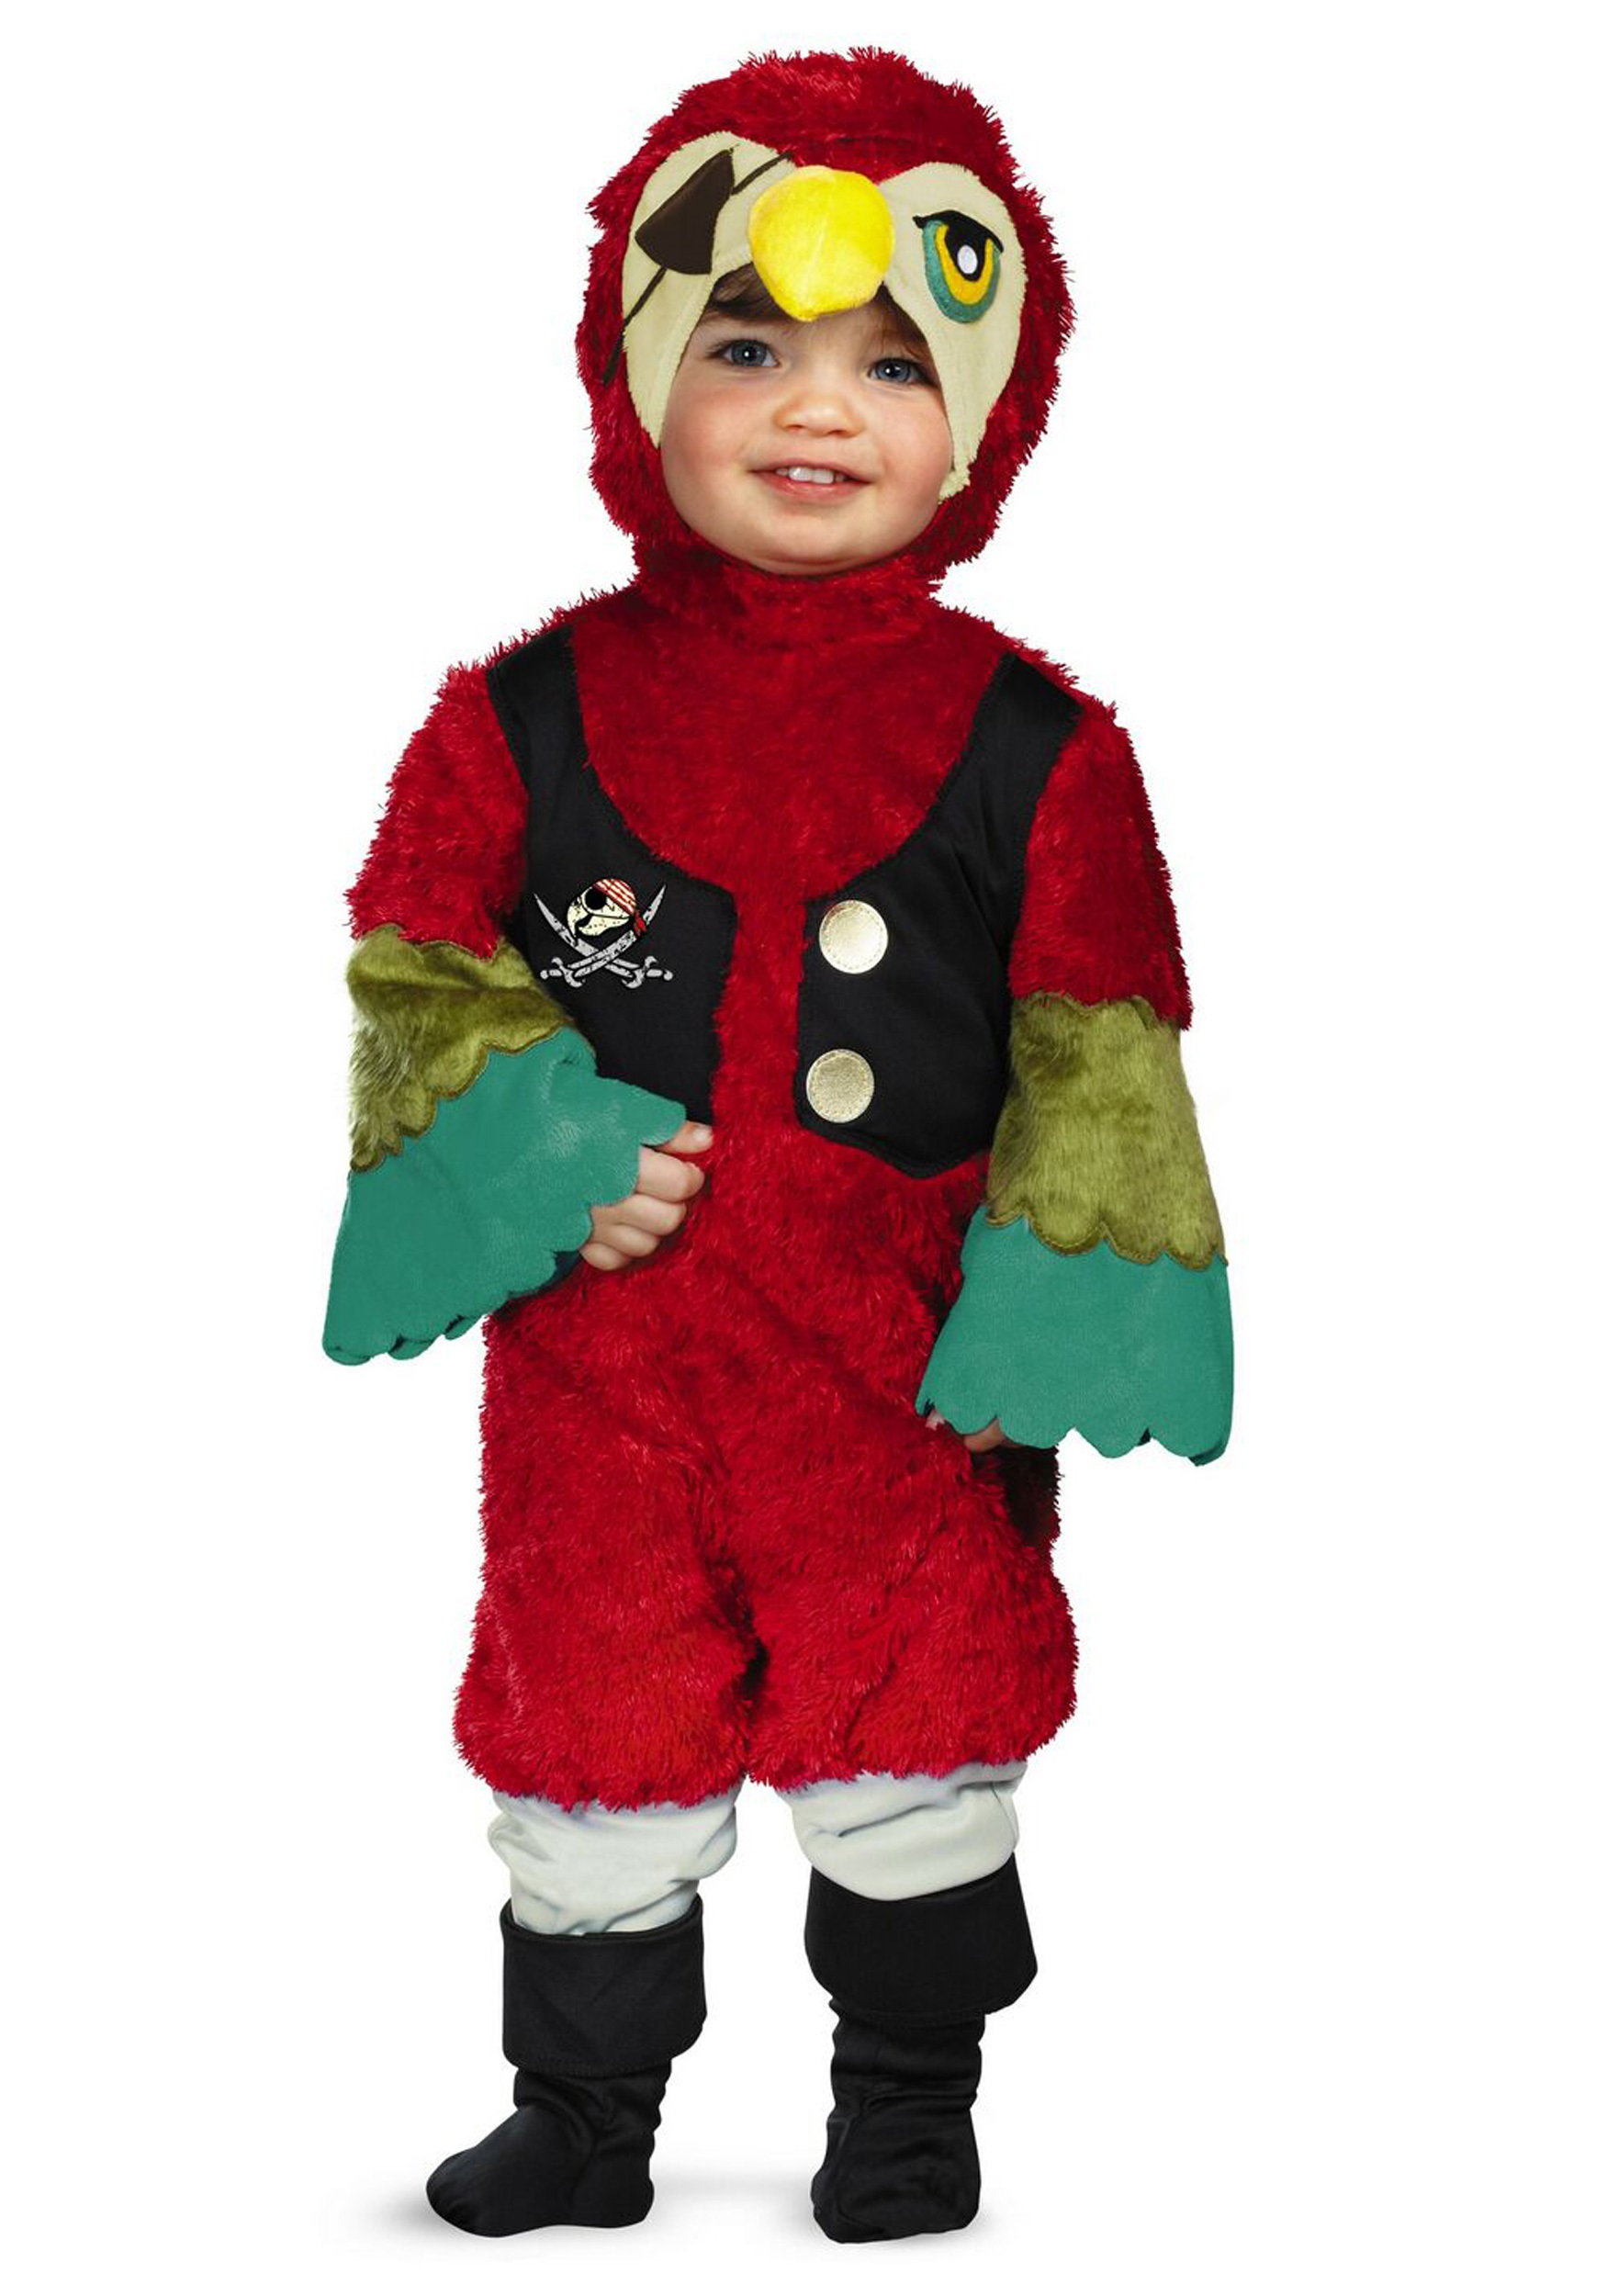 Infant Pirate Parrot Costume  sc 1 st  Halloween Costumes & Infant Pirate Parrot Costume - Halloween Costumes